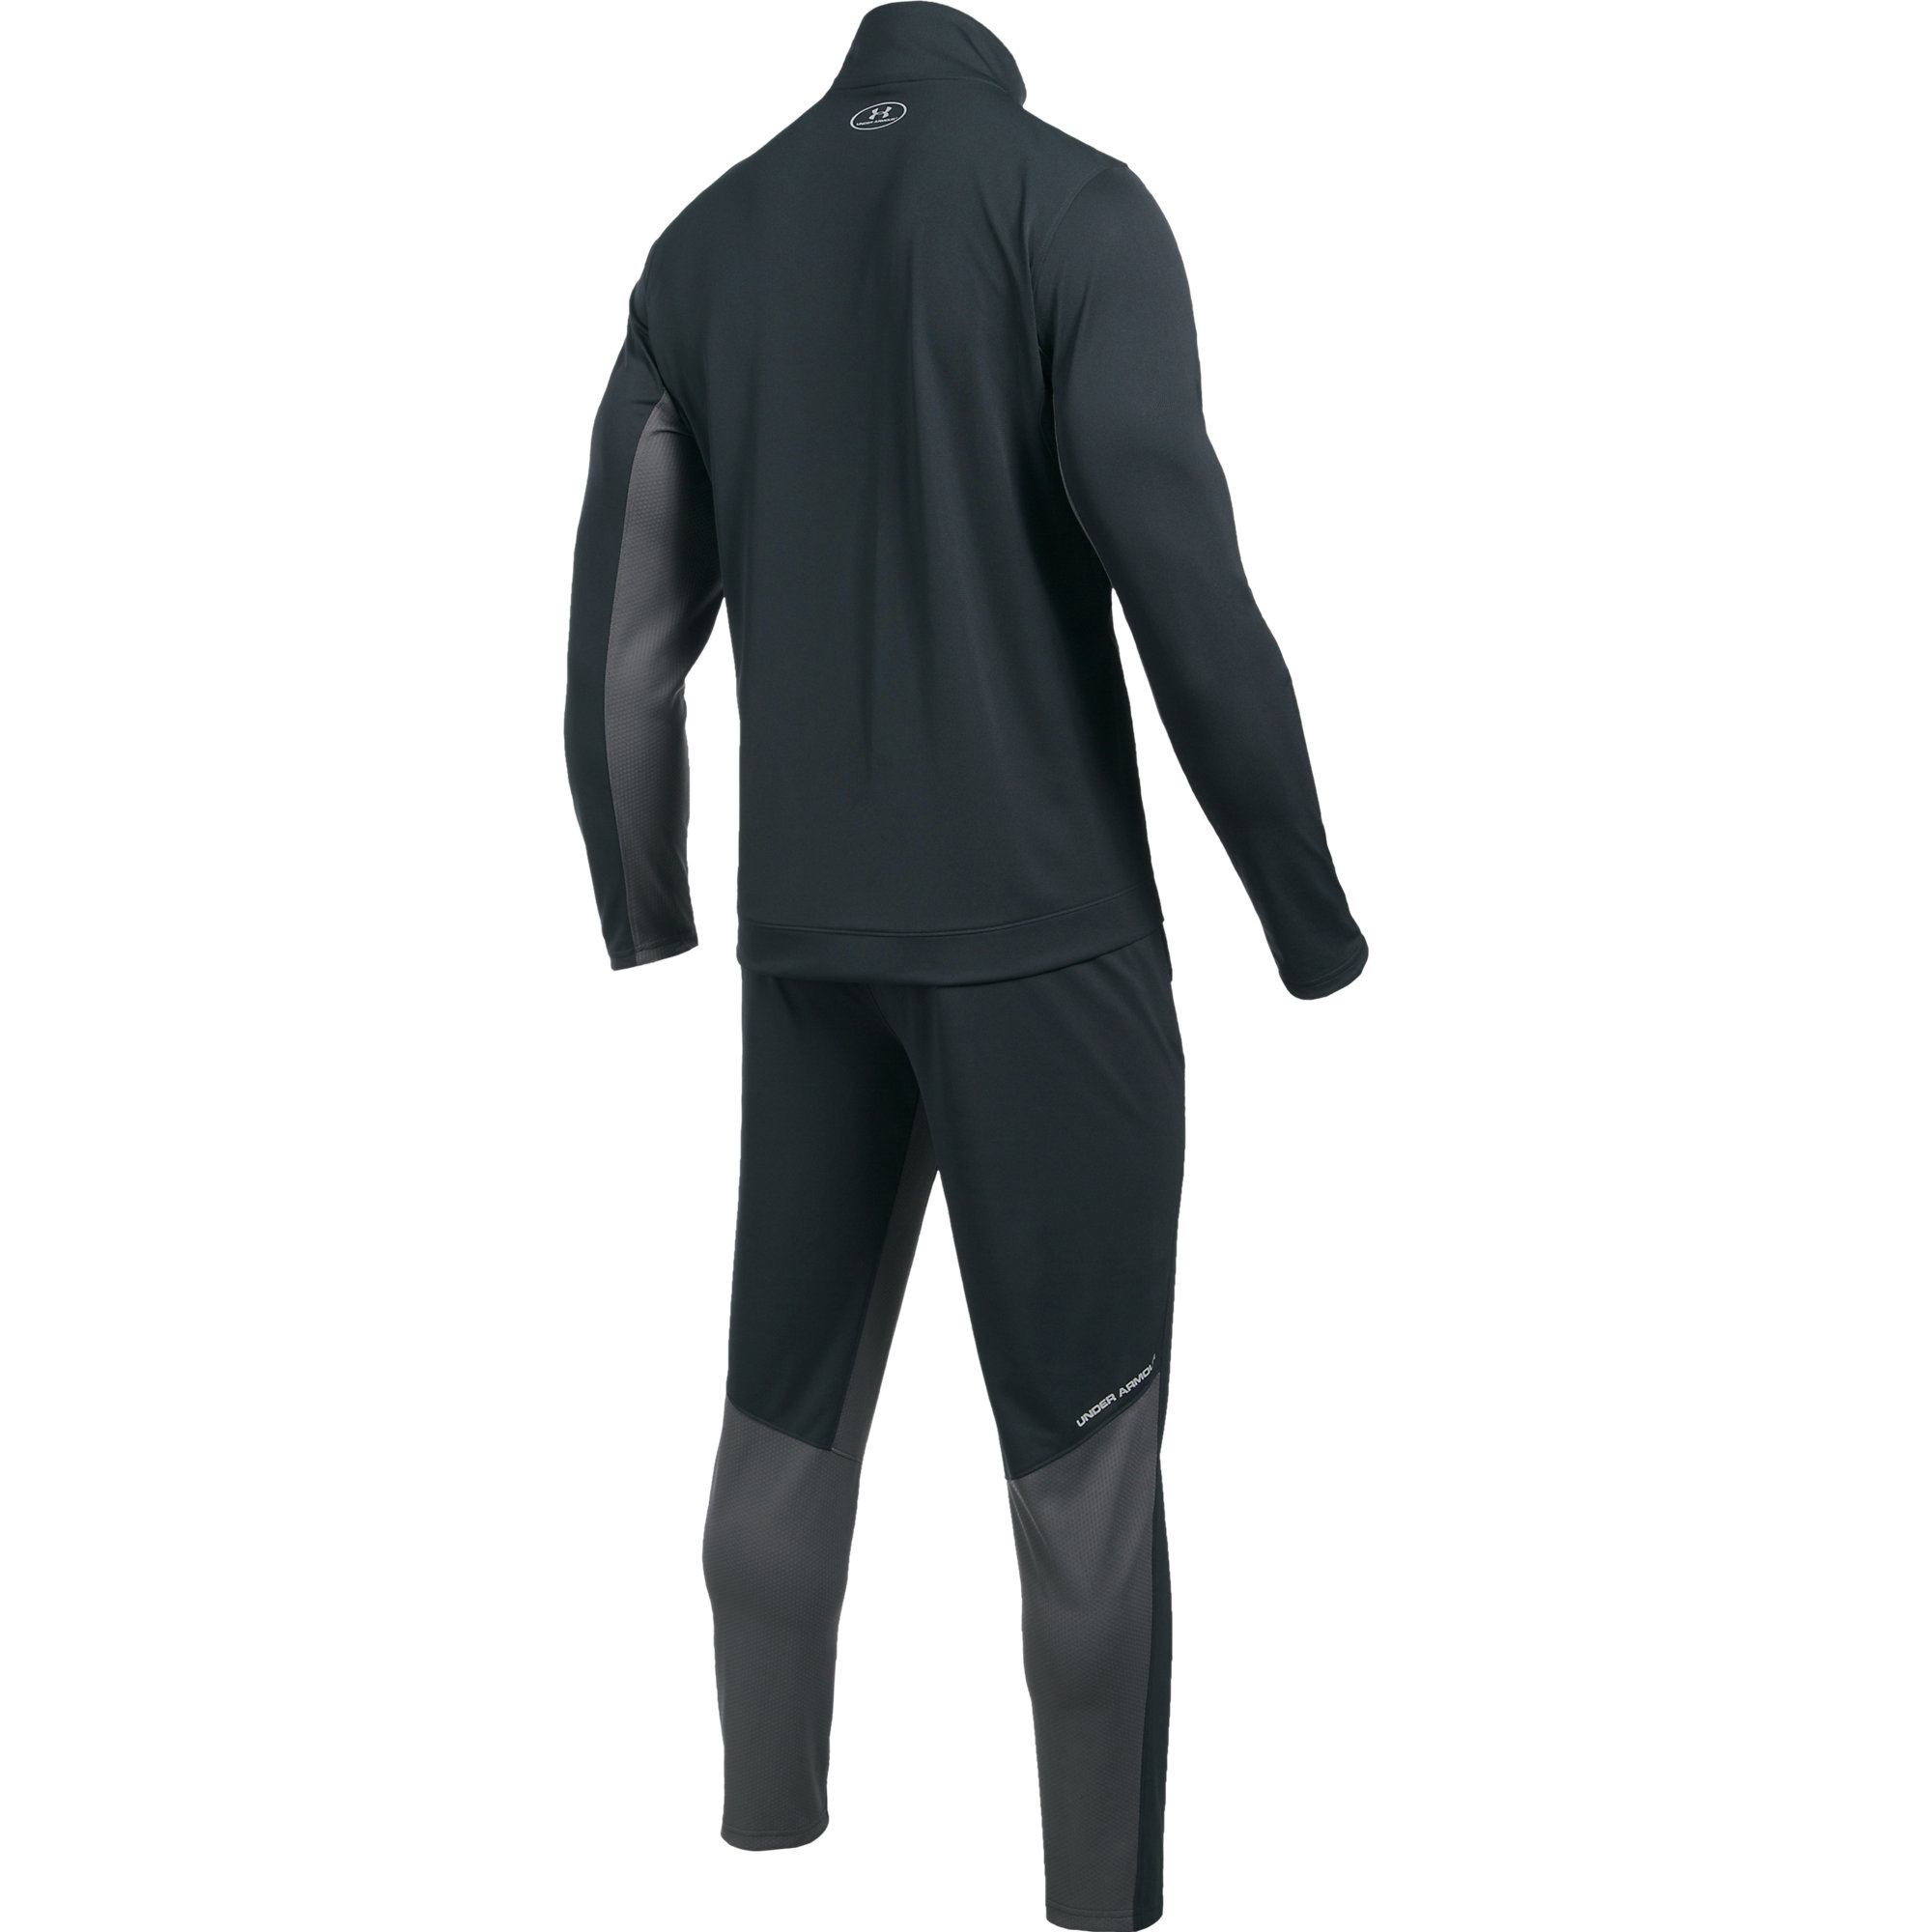 1ed62eb7b52 Under Armour Challenger II Mens Knit Football Tracksuit Suit Set Outfit